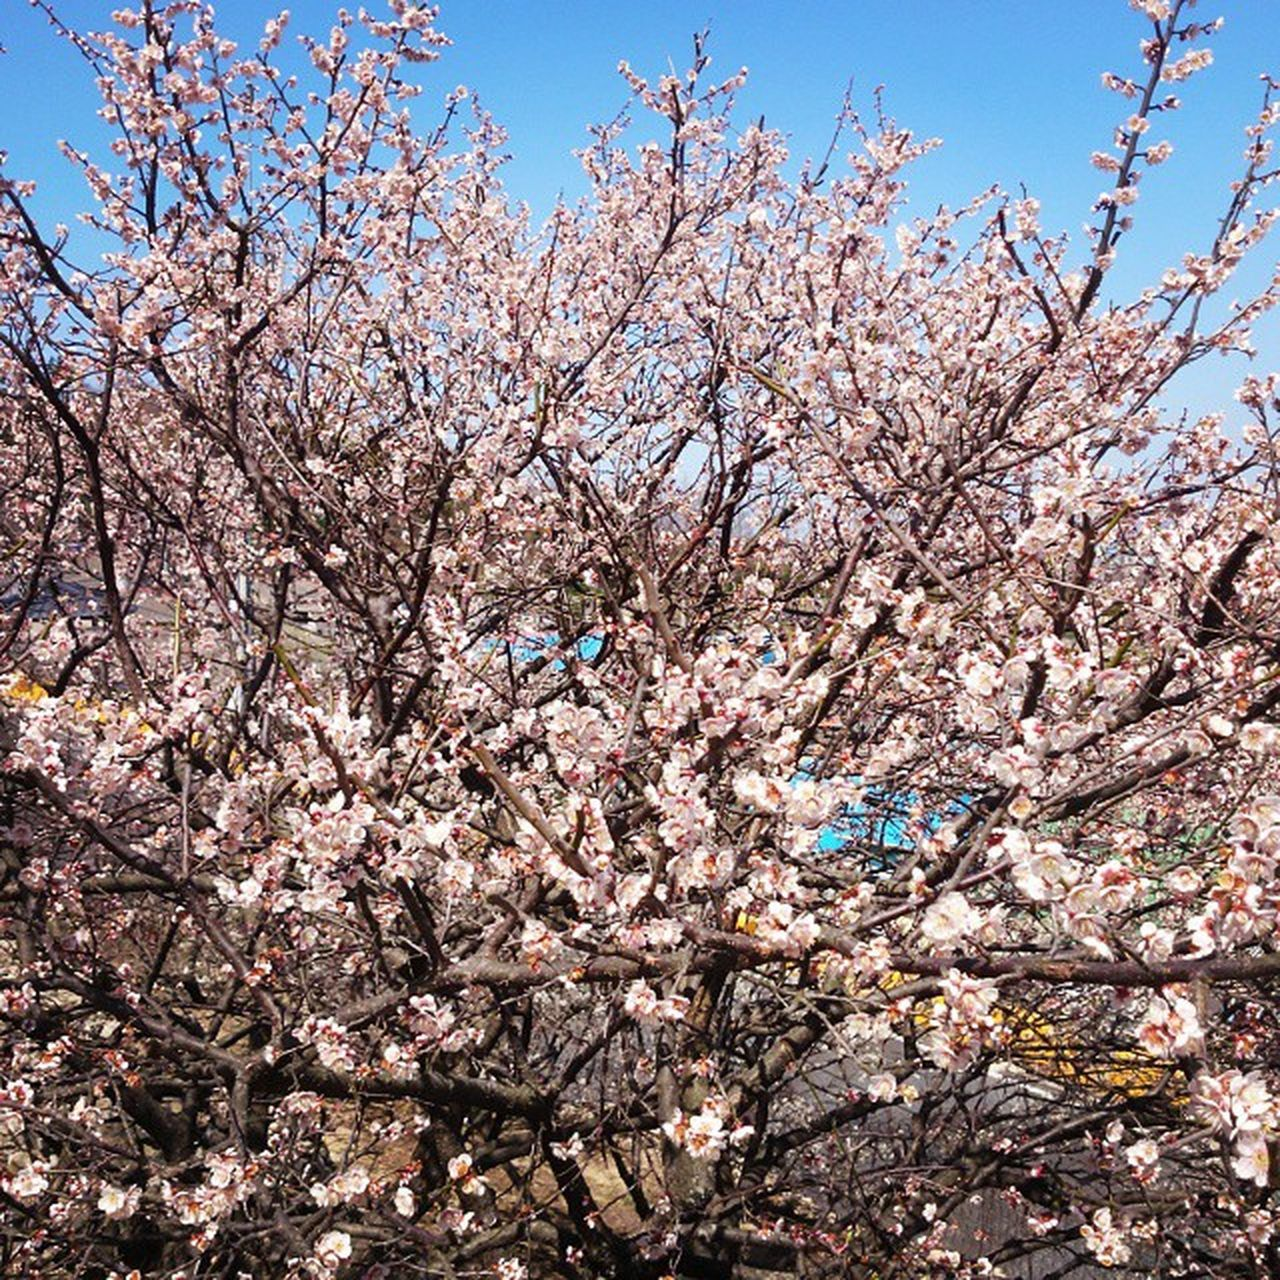 flower, tree, cherry blossom, blossom, cherry tree, springtime, branch, beauty in nature, fragility, almond tree, orchard, pink color, nature, freshness, growth, apple blossom, no people, apple tree, low angle view, day, outdoors, sky, plum blossom, scenics, clear sky, close-up, flower head